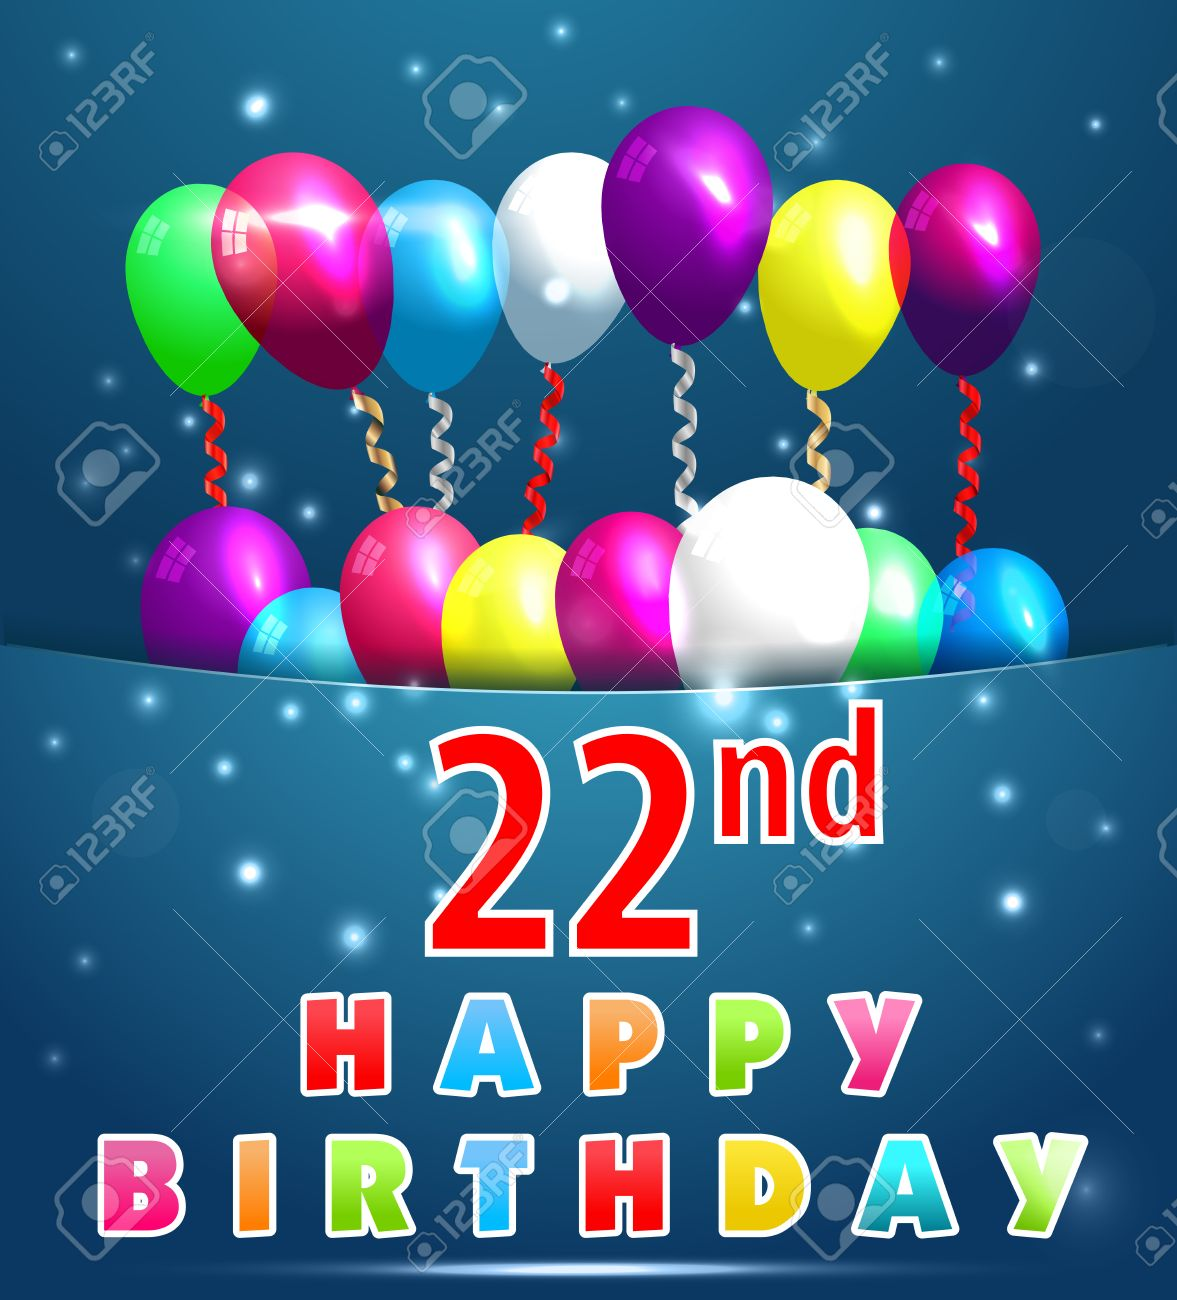 22 Year Happy Birthday Card With Balloons And Ribbons 22nd Stock Vector